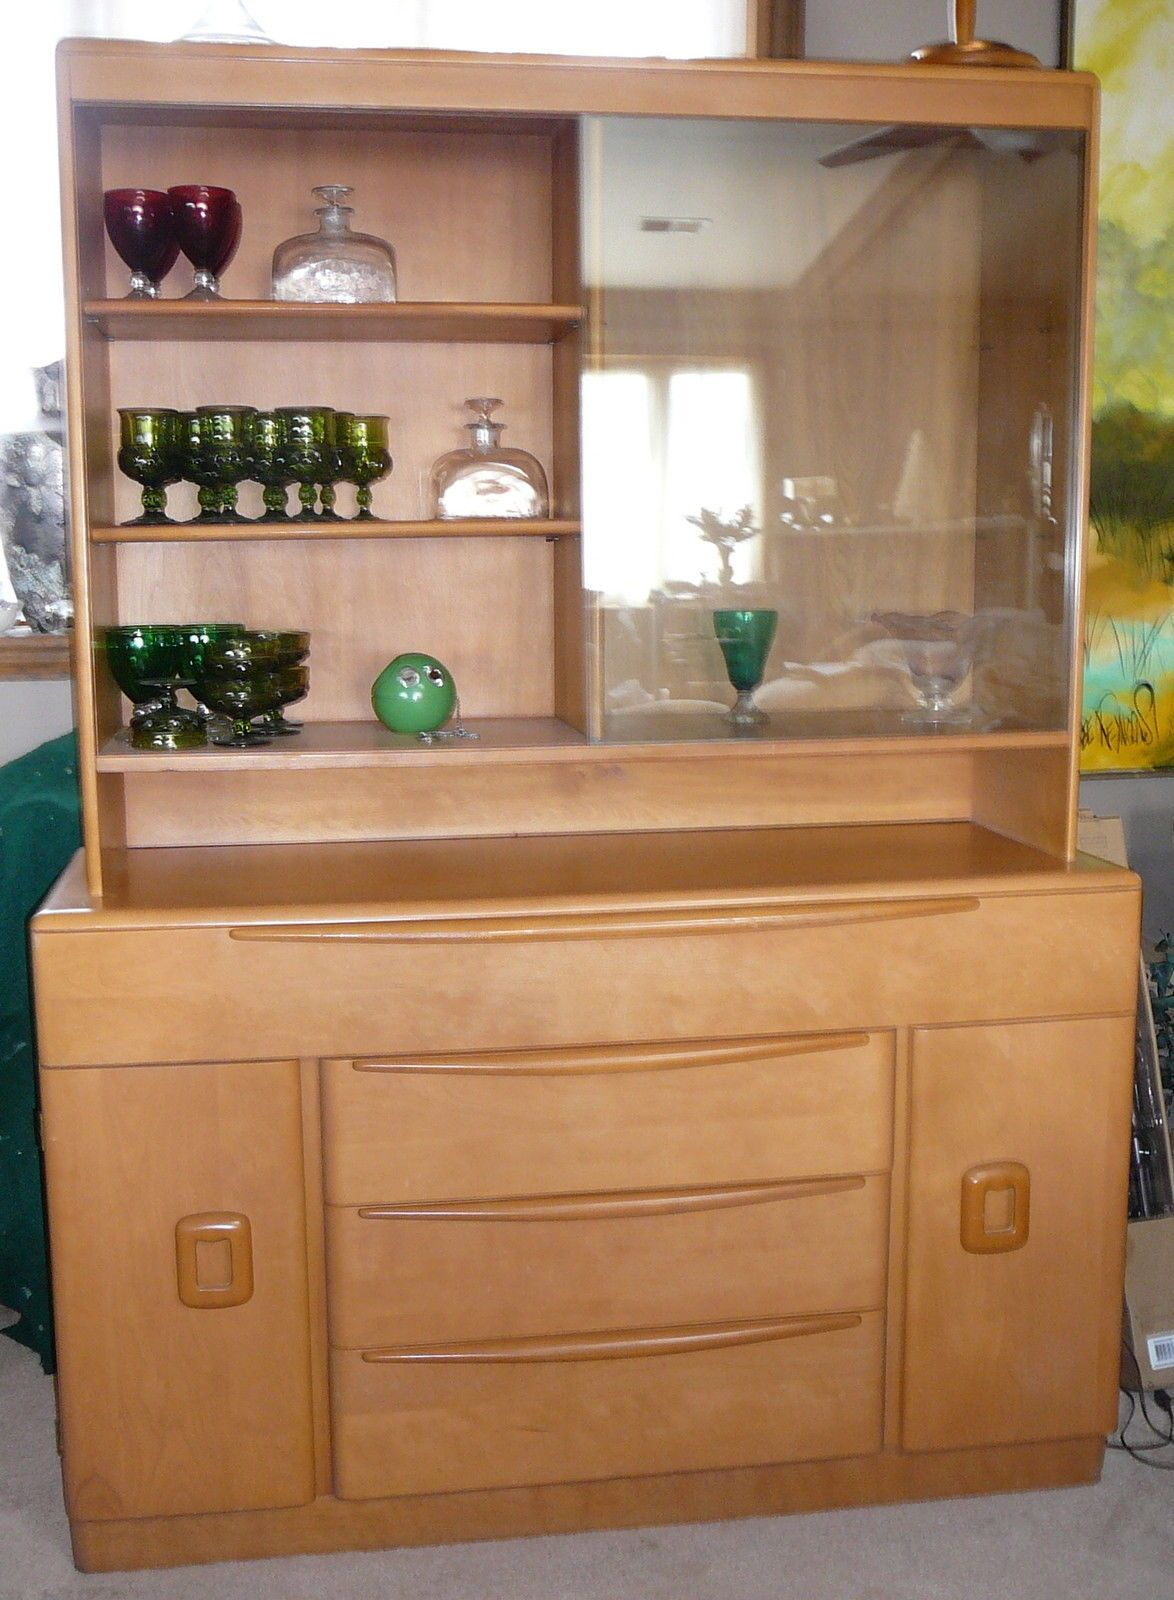 From Pataskala Ohio Heywood Wakefield Lg Credenza China Cabinet Top M509 M593 Only 1 Yr Production Ebay Asking 995